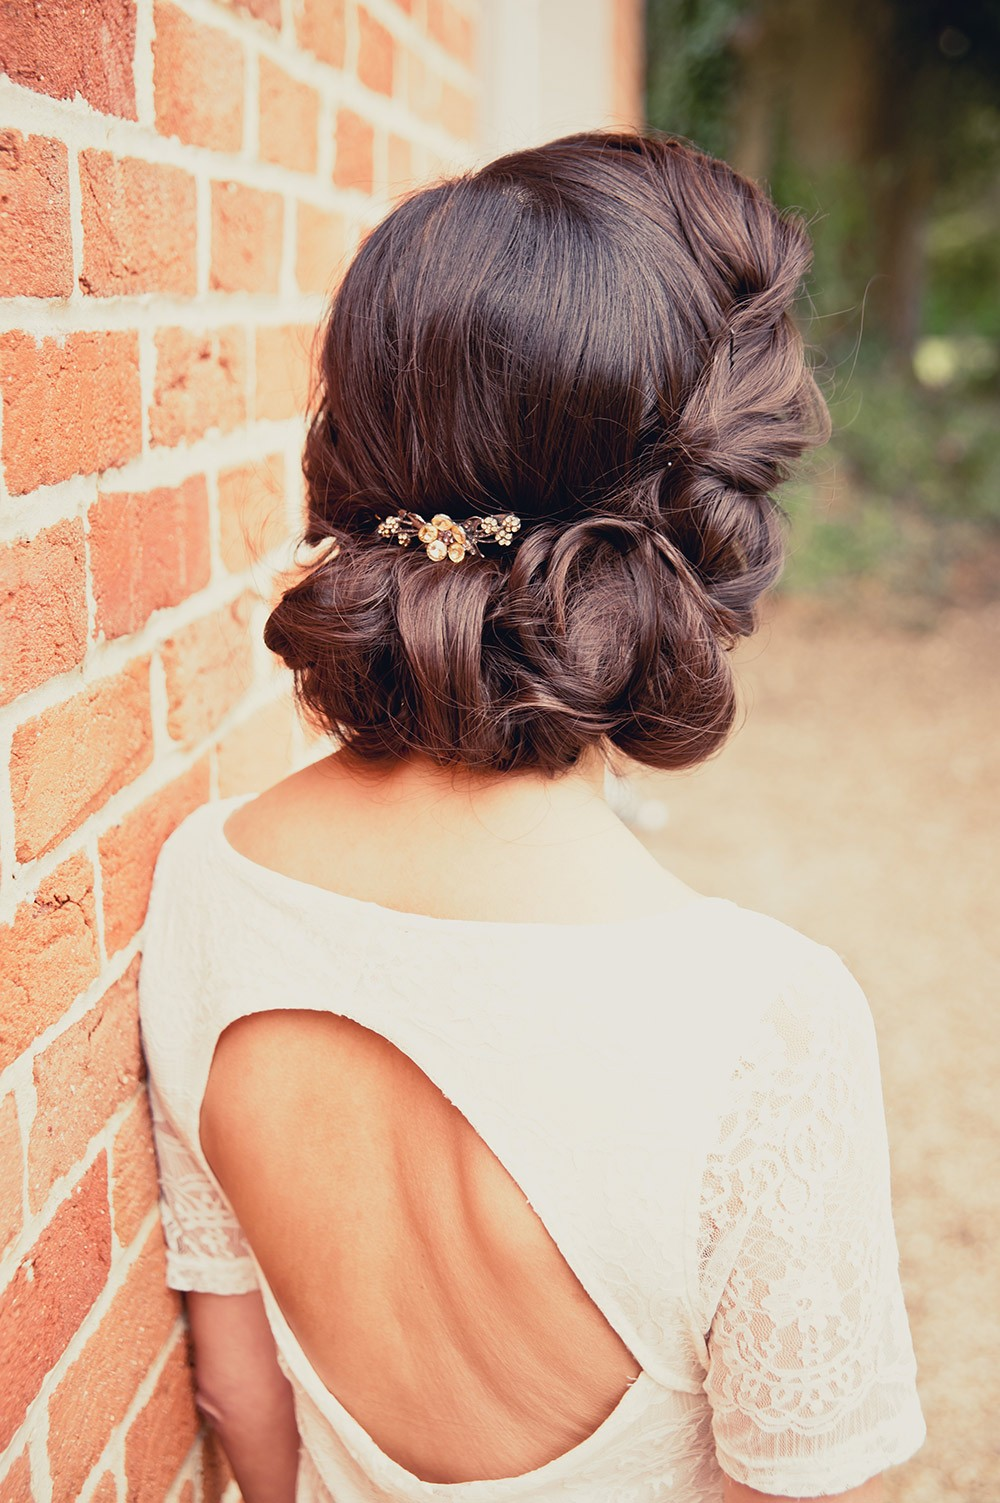 wedding hair, autumn wedding hair, winter wedding hair, wedding hair trends 2017